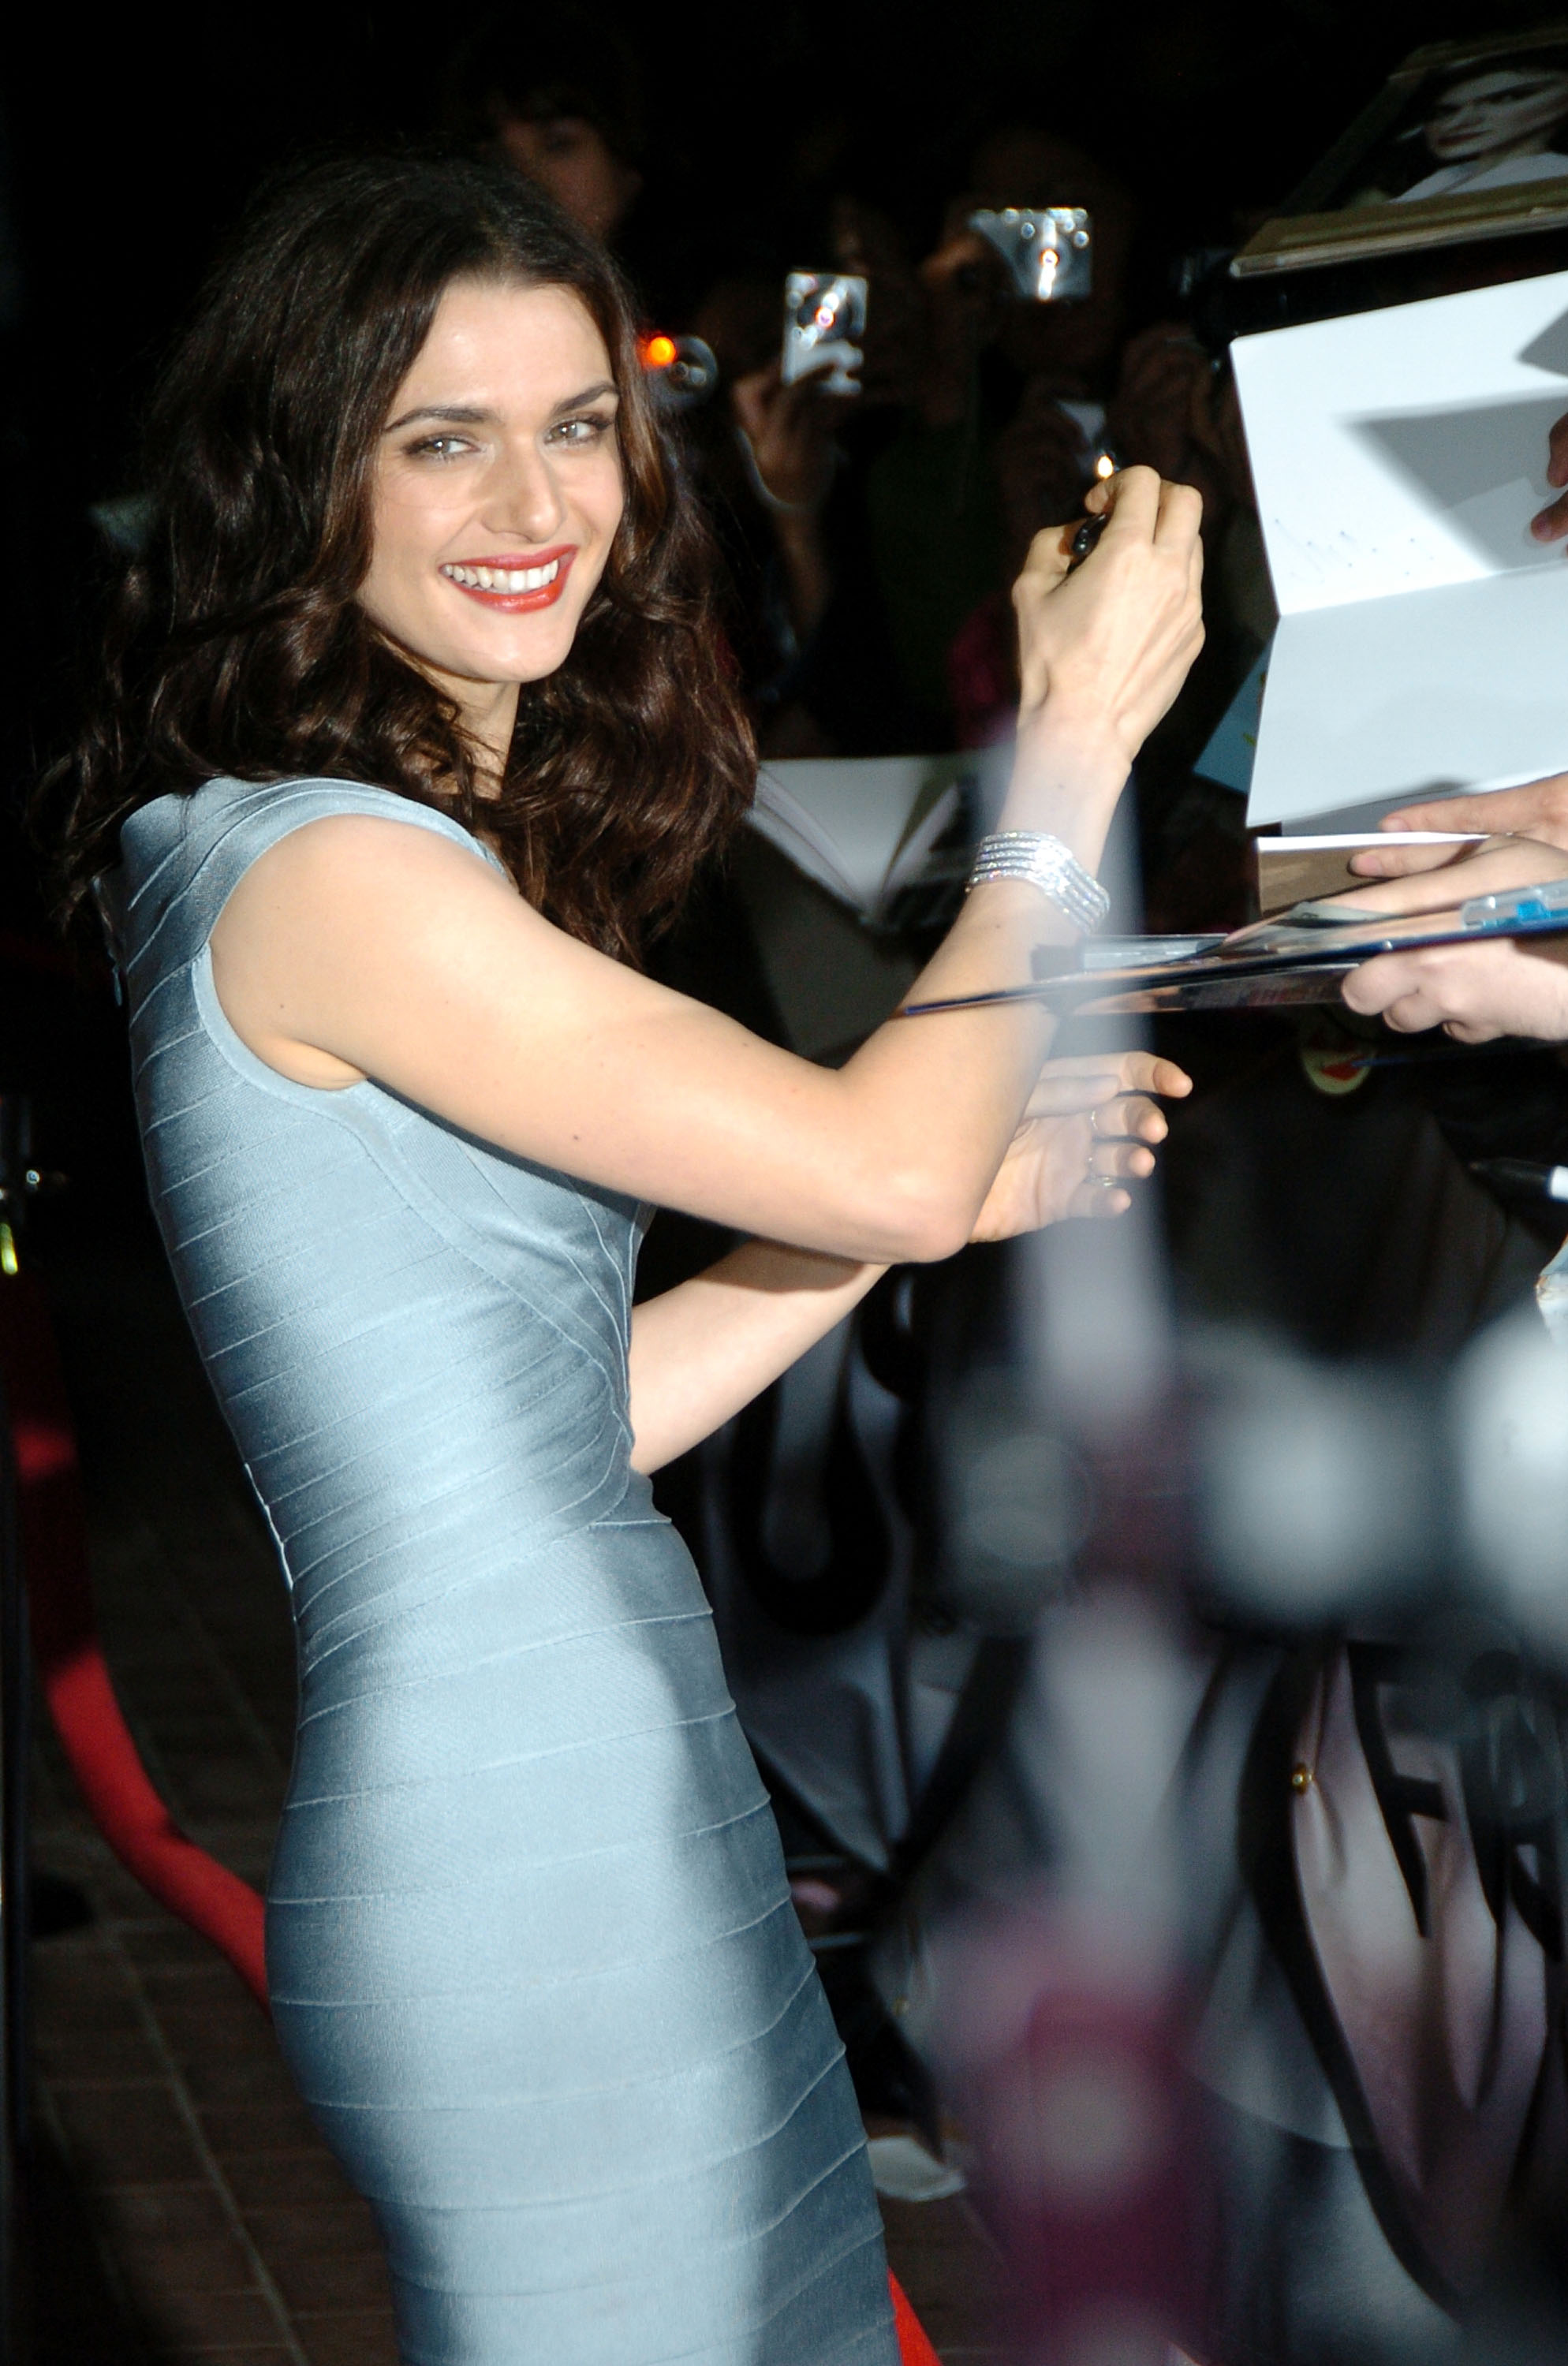 26289_Celebutopia-Rachel_Weisz-The_Brothers_Bloom_premiere_during_the_2008_Toronto_International_Film_Festival-03_122_998lo.jpg